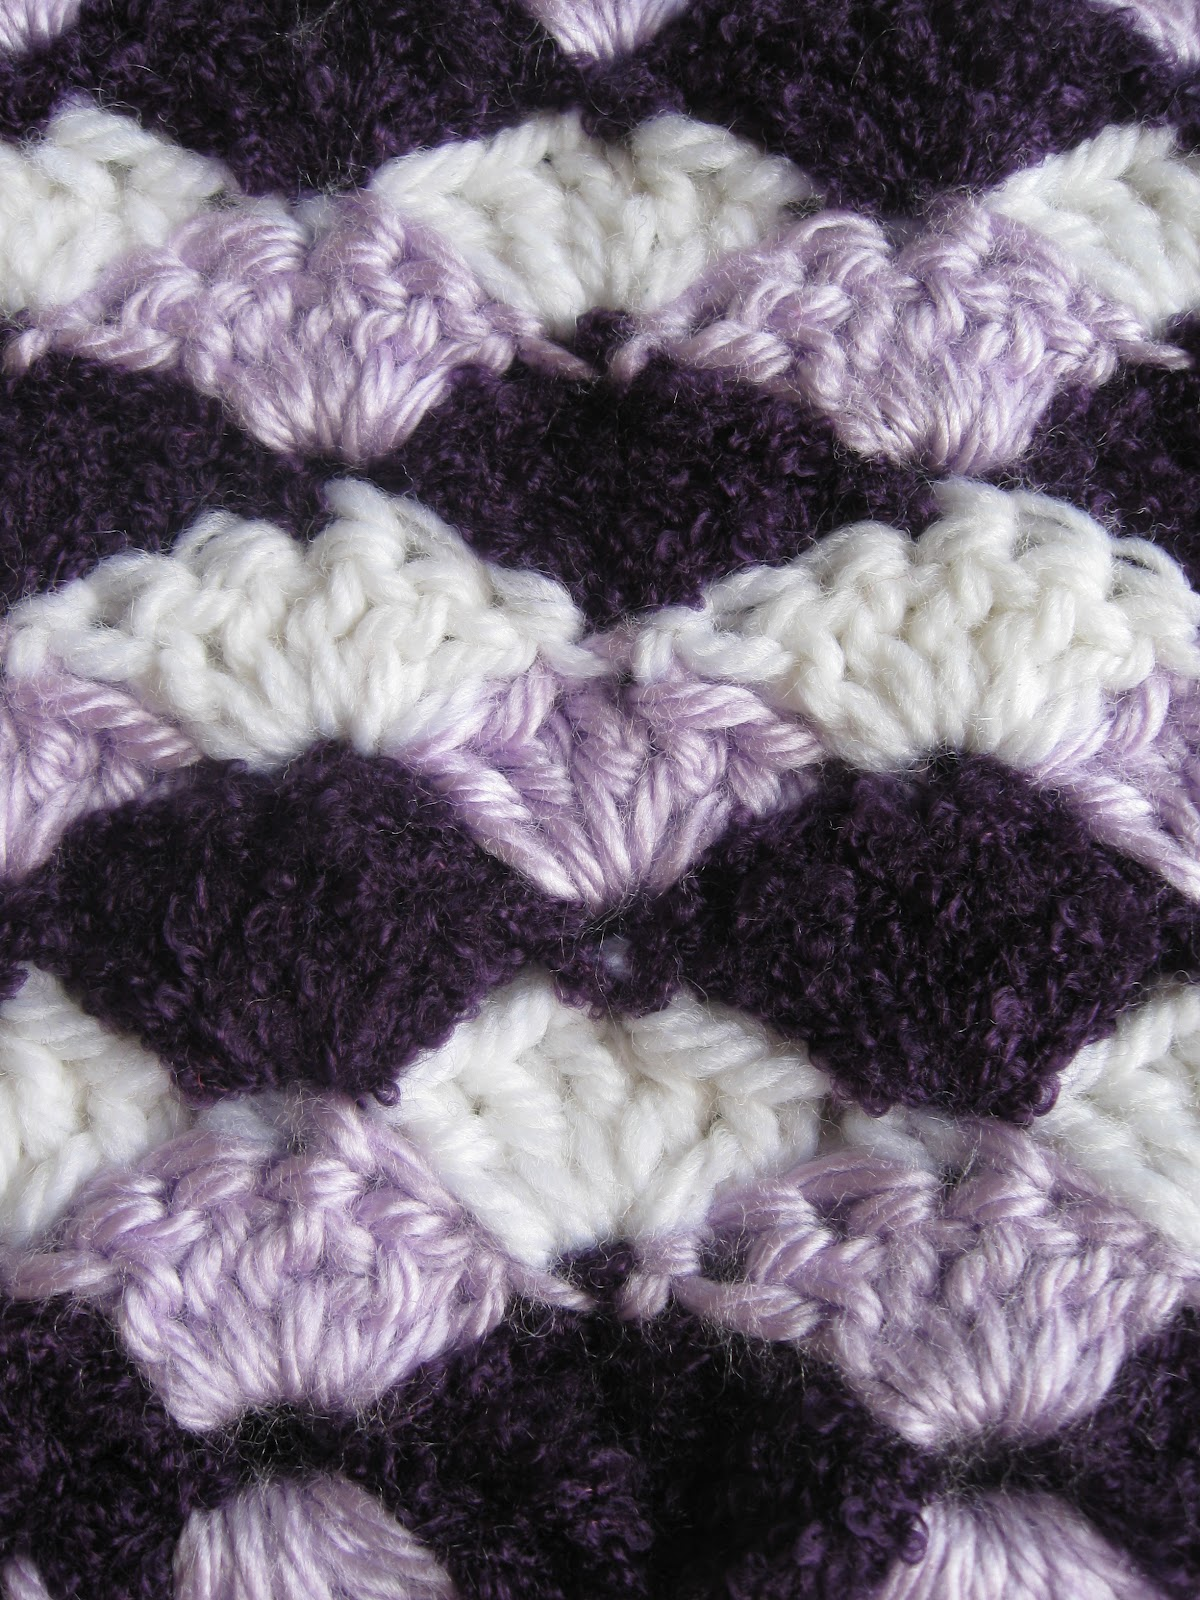 Celtic Knot Crochet: Free Patterns